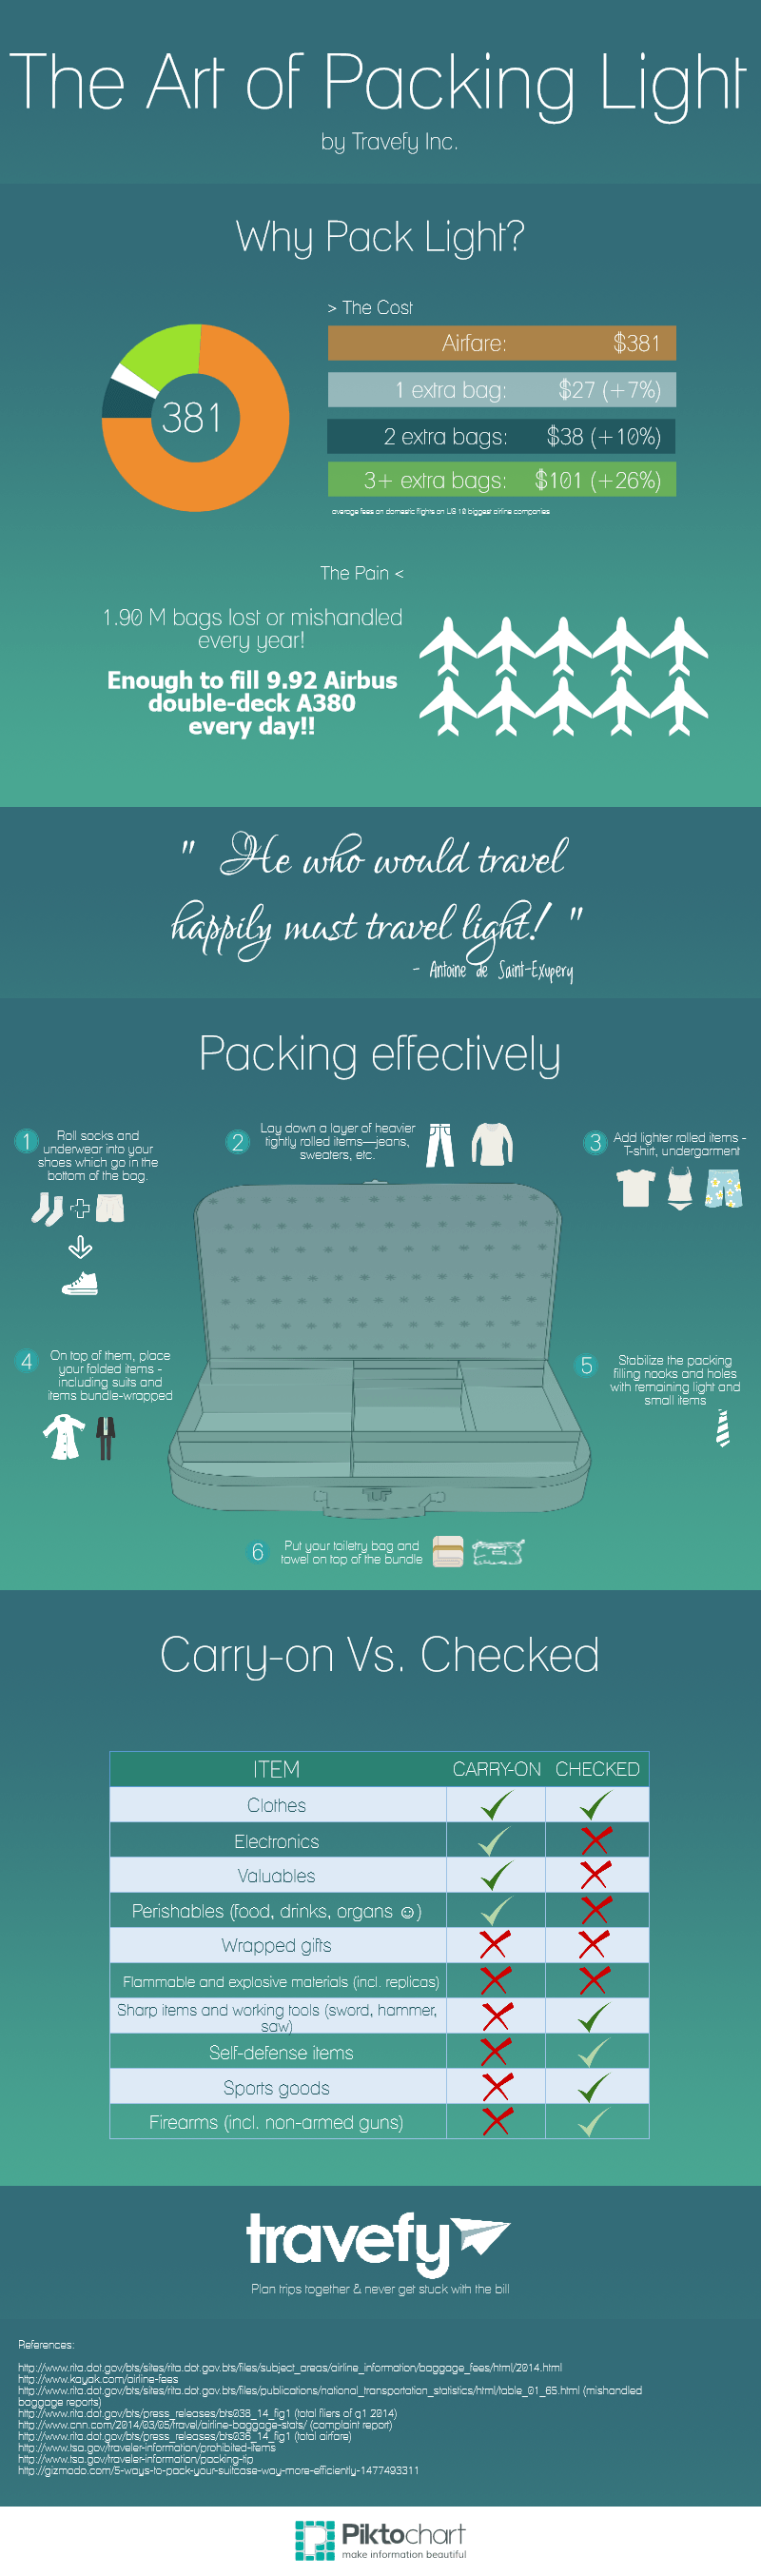 The Art of Packing Light by Travefy